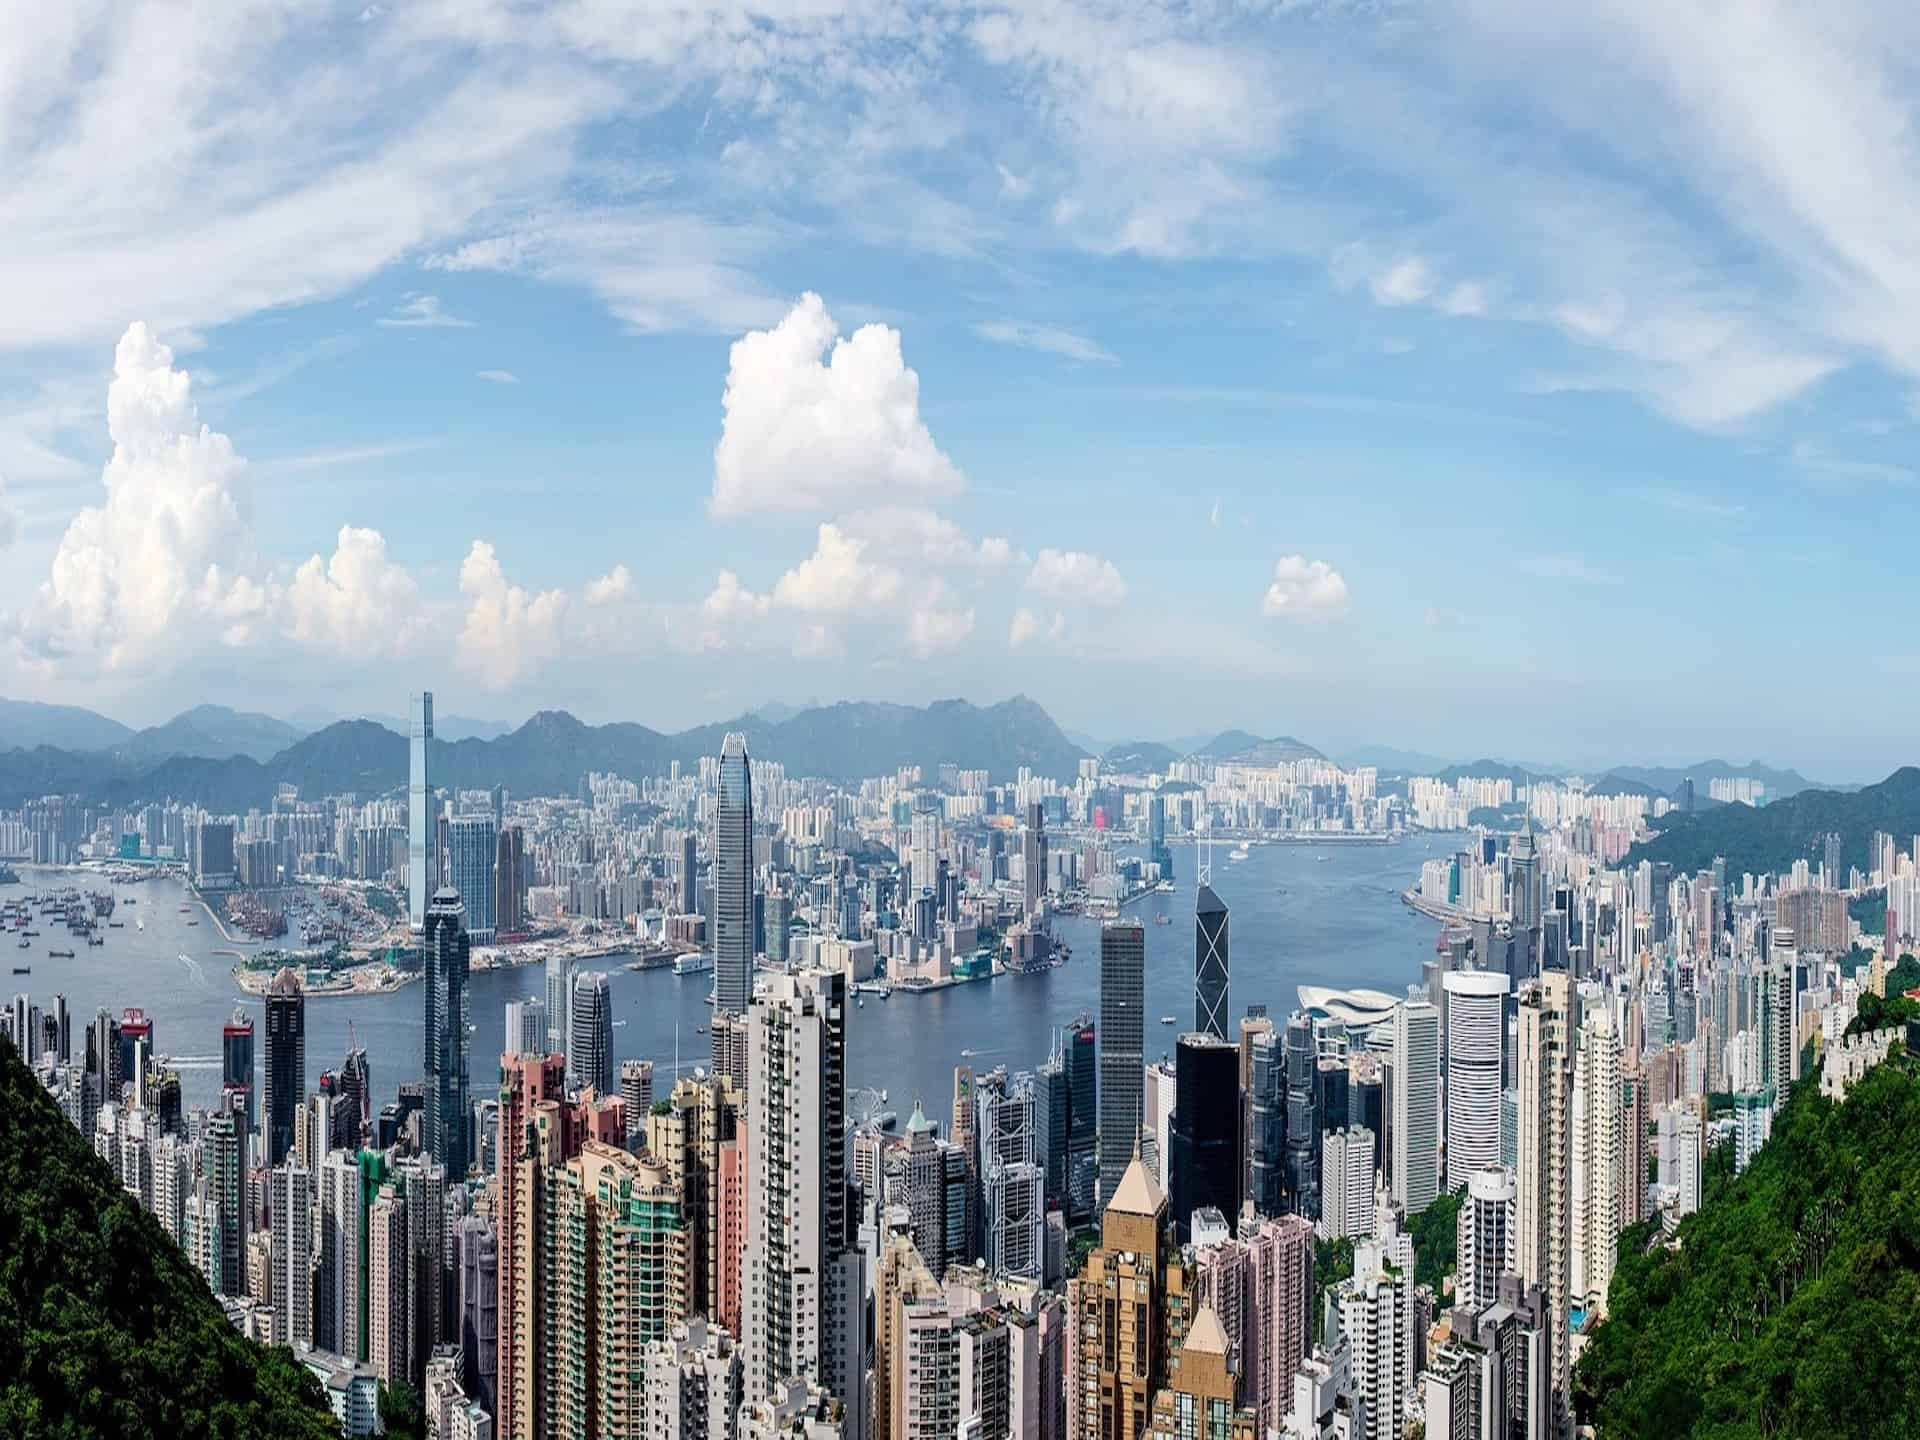 How To Get To Victoria Peak Hong Kong